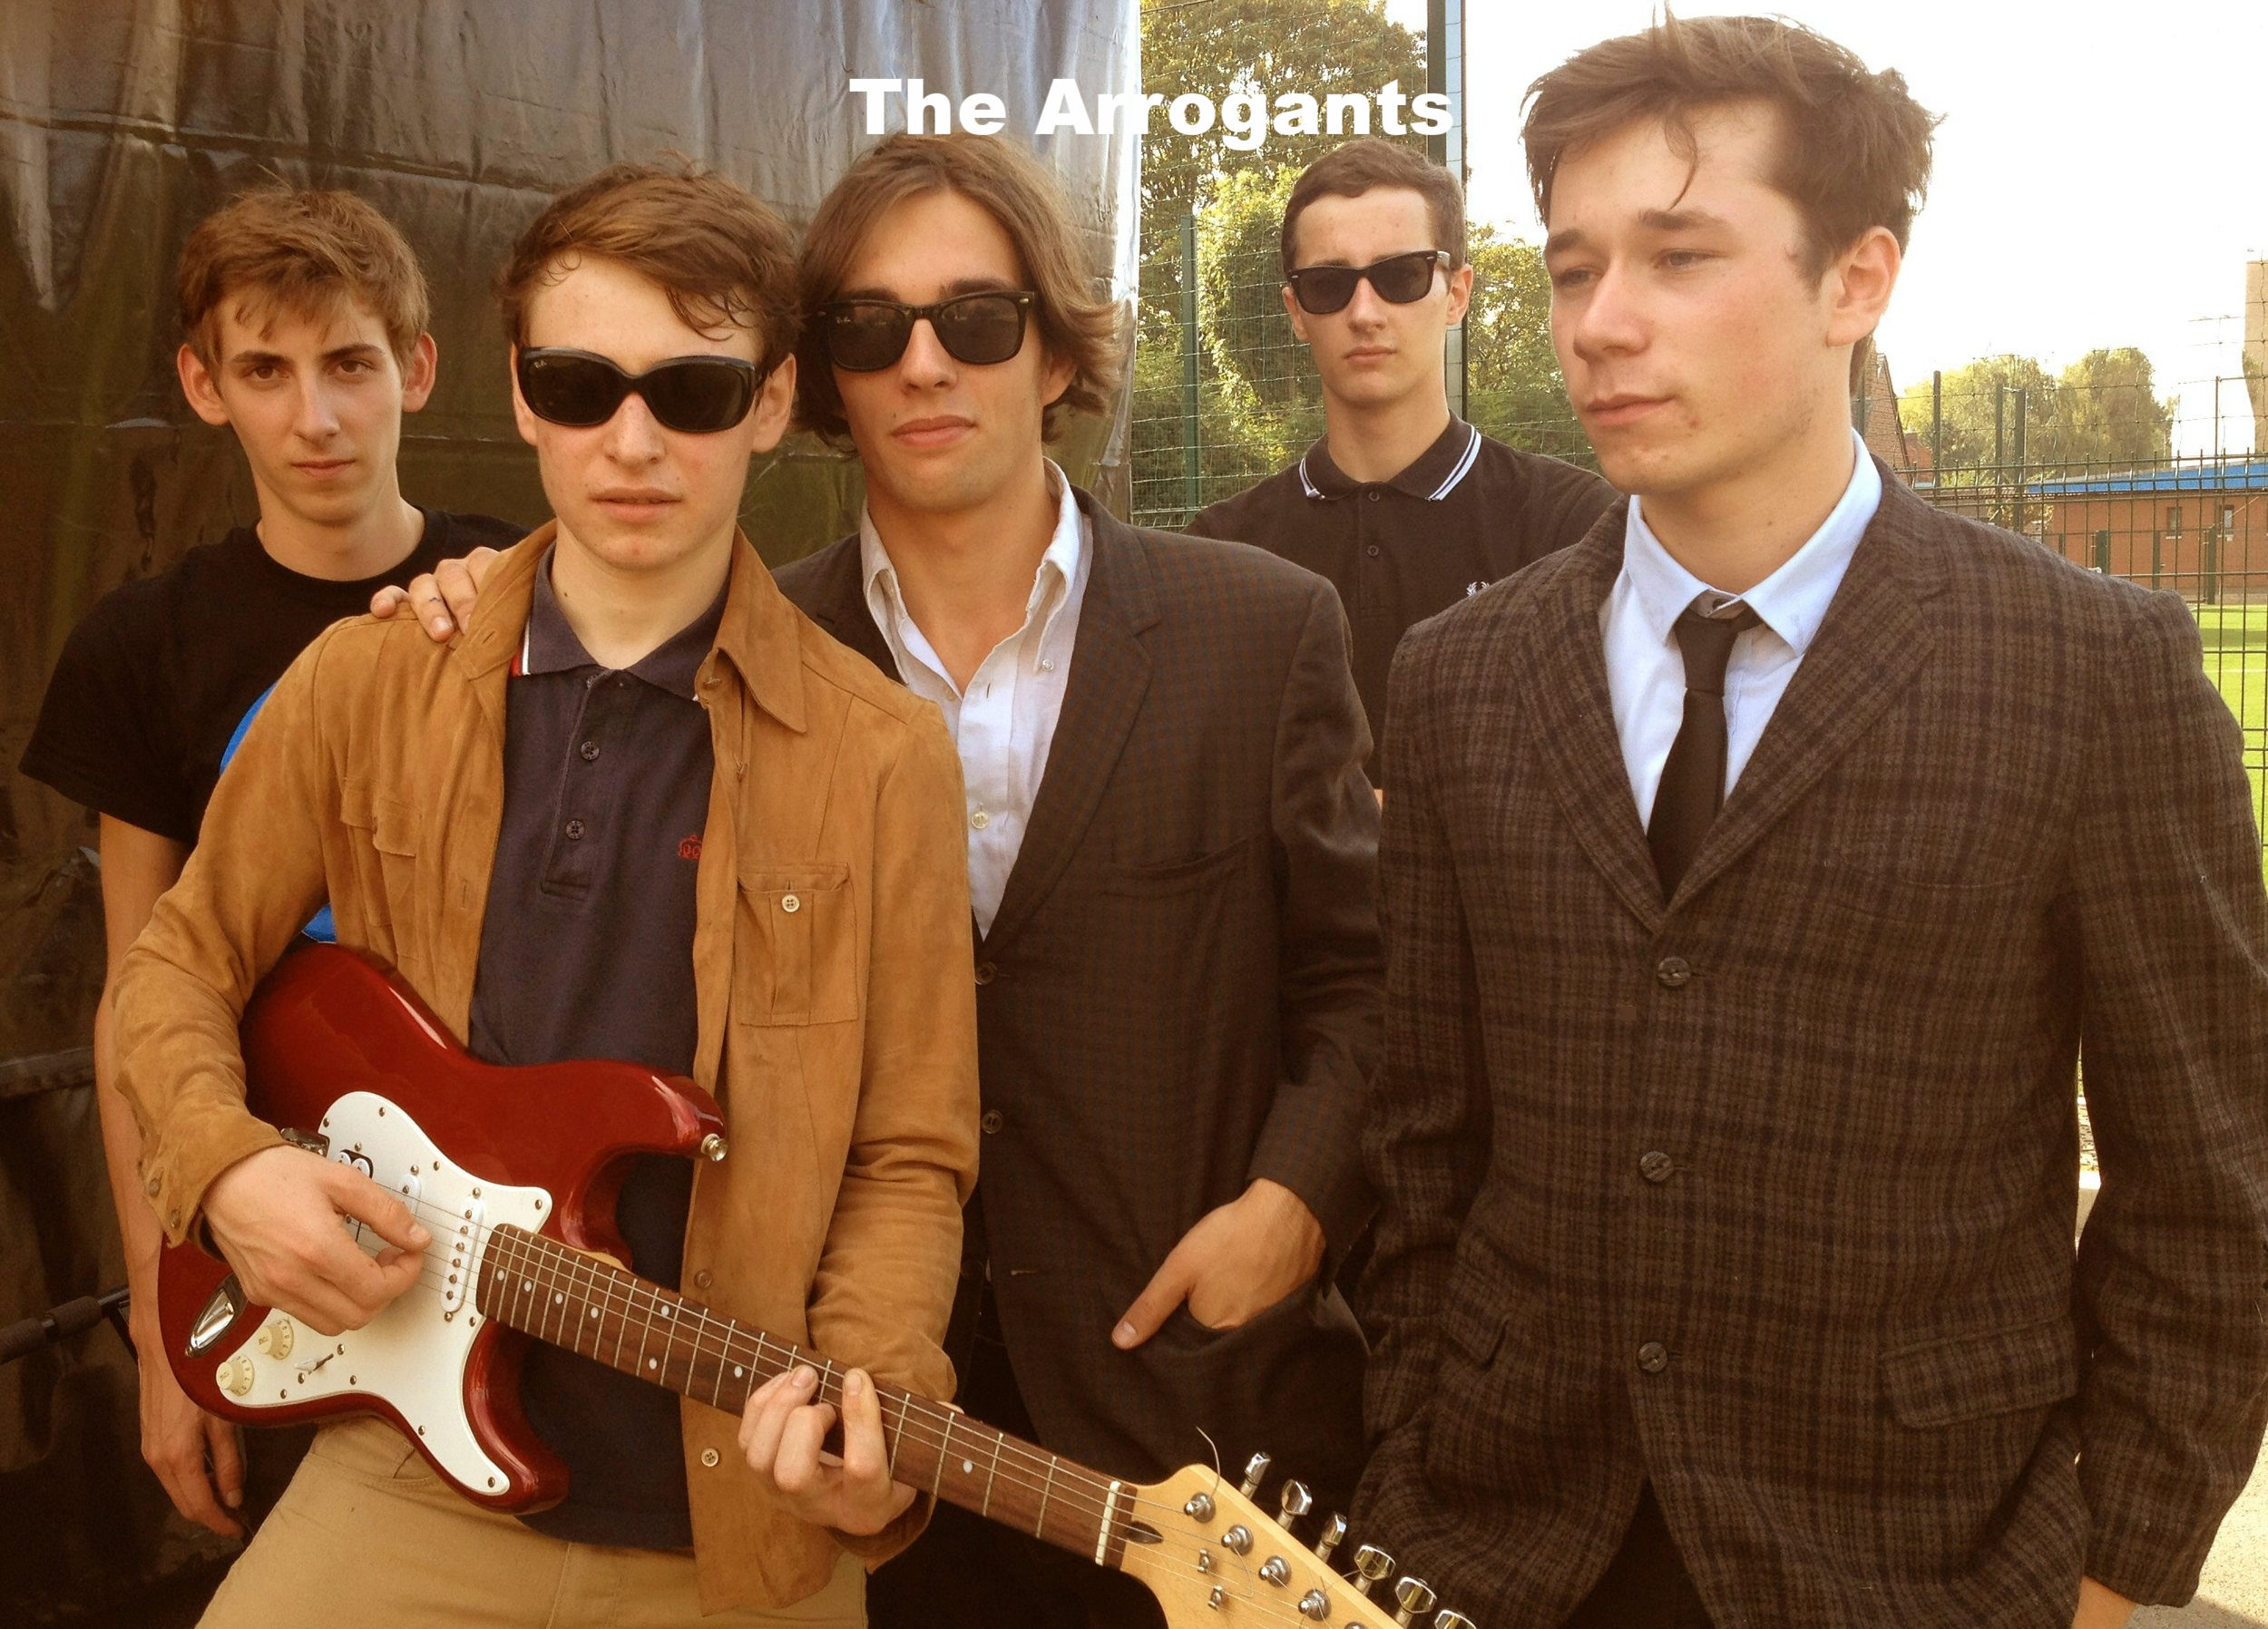 The Arrogants